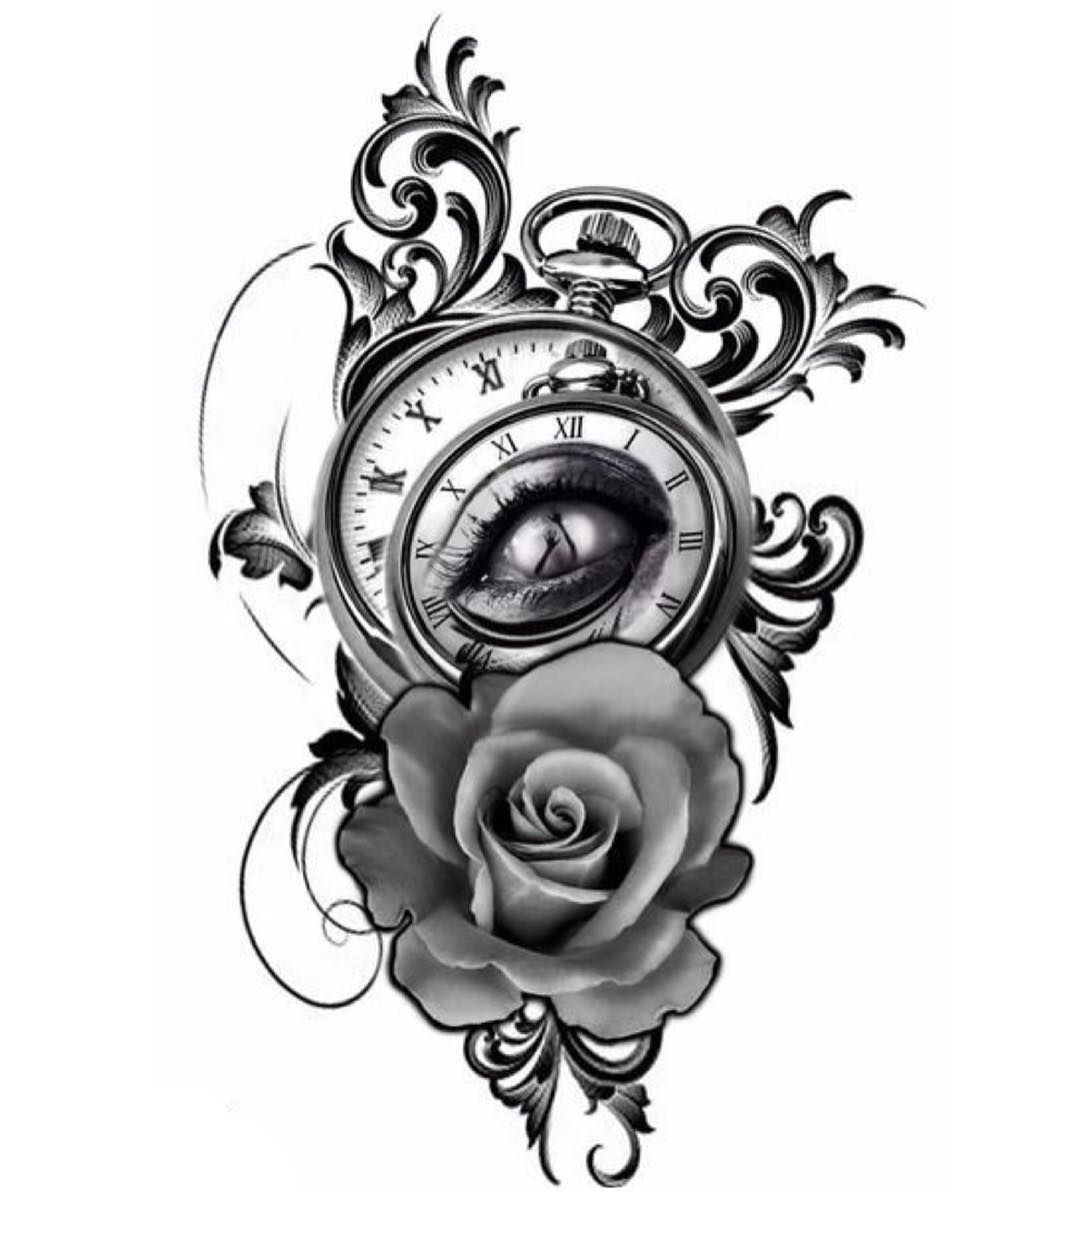 Sparrows Tattoo Company On Instagram Hey Guys Viptattoos13 Has A Few Designs Available Call The Shop To Sche Tattoo Studio Hourglass Tattoo Tattoo Designs